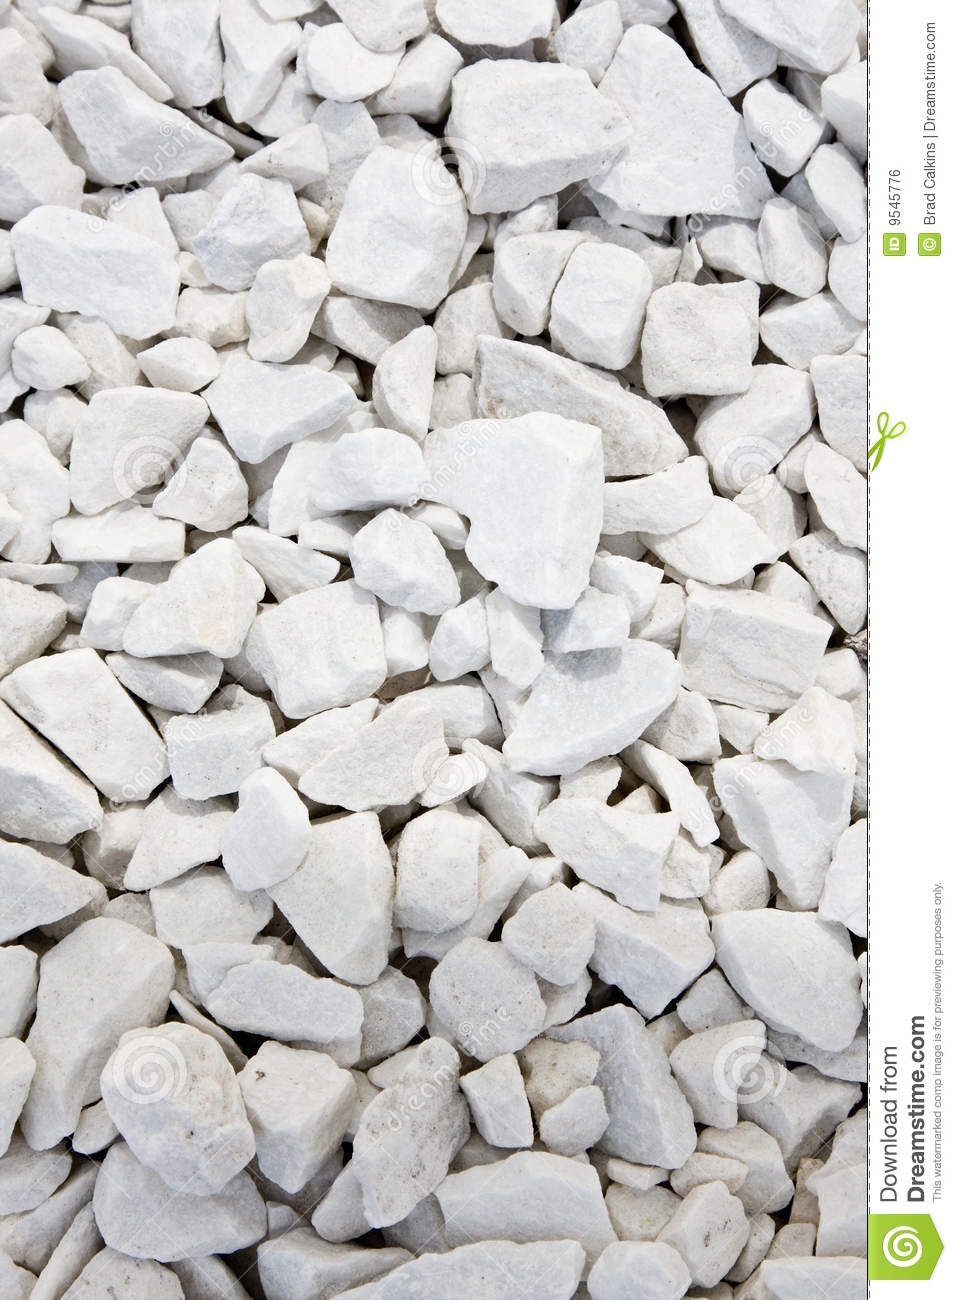 White Landscaping Rock